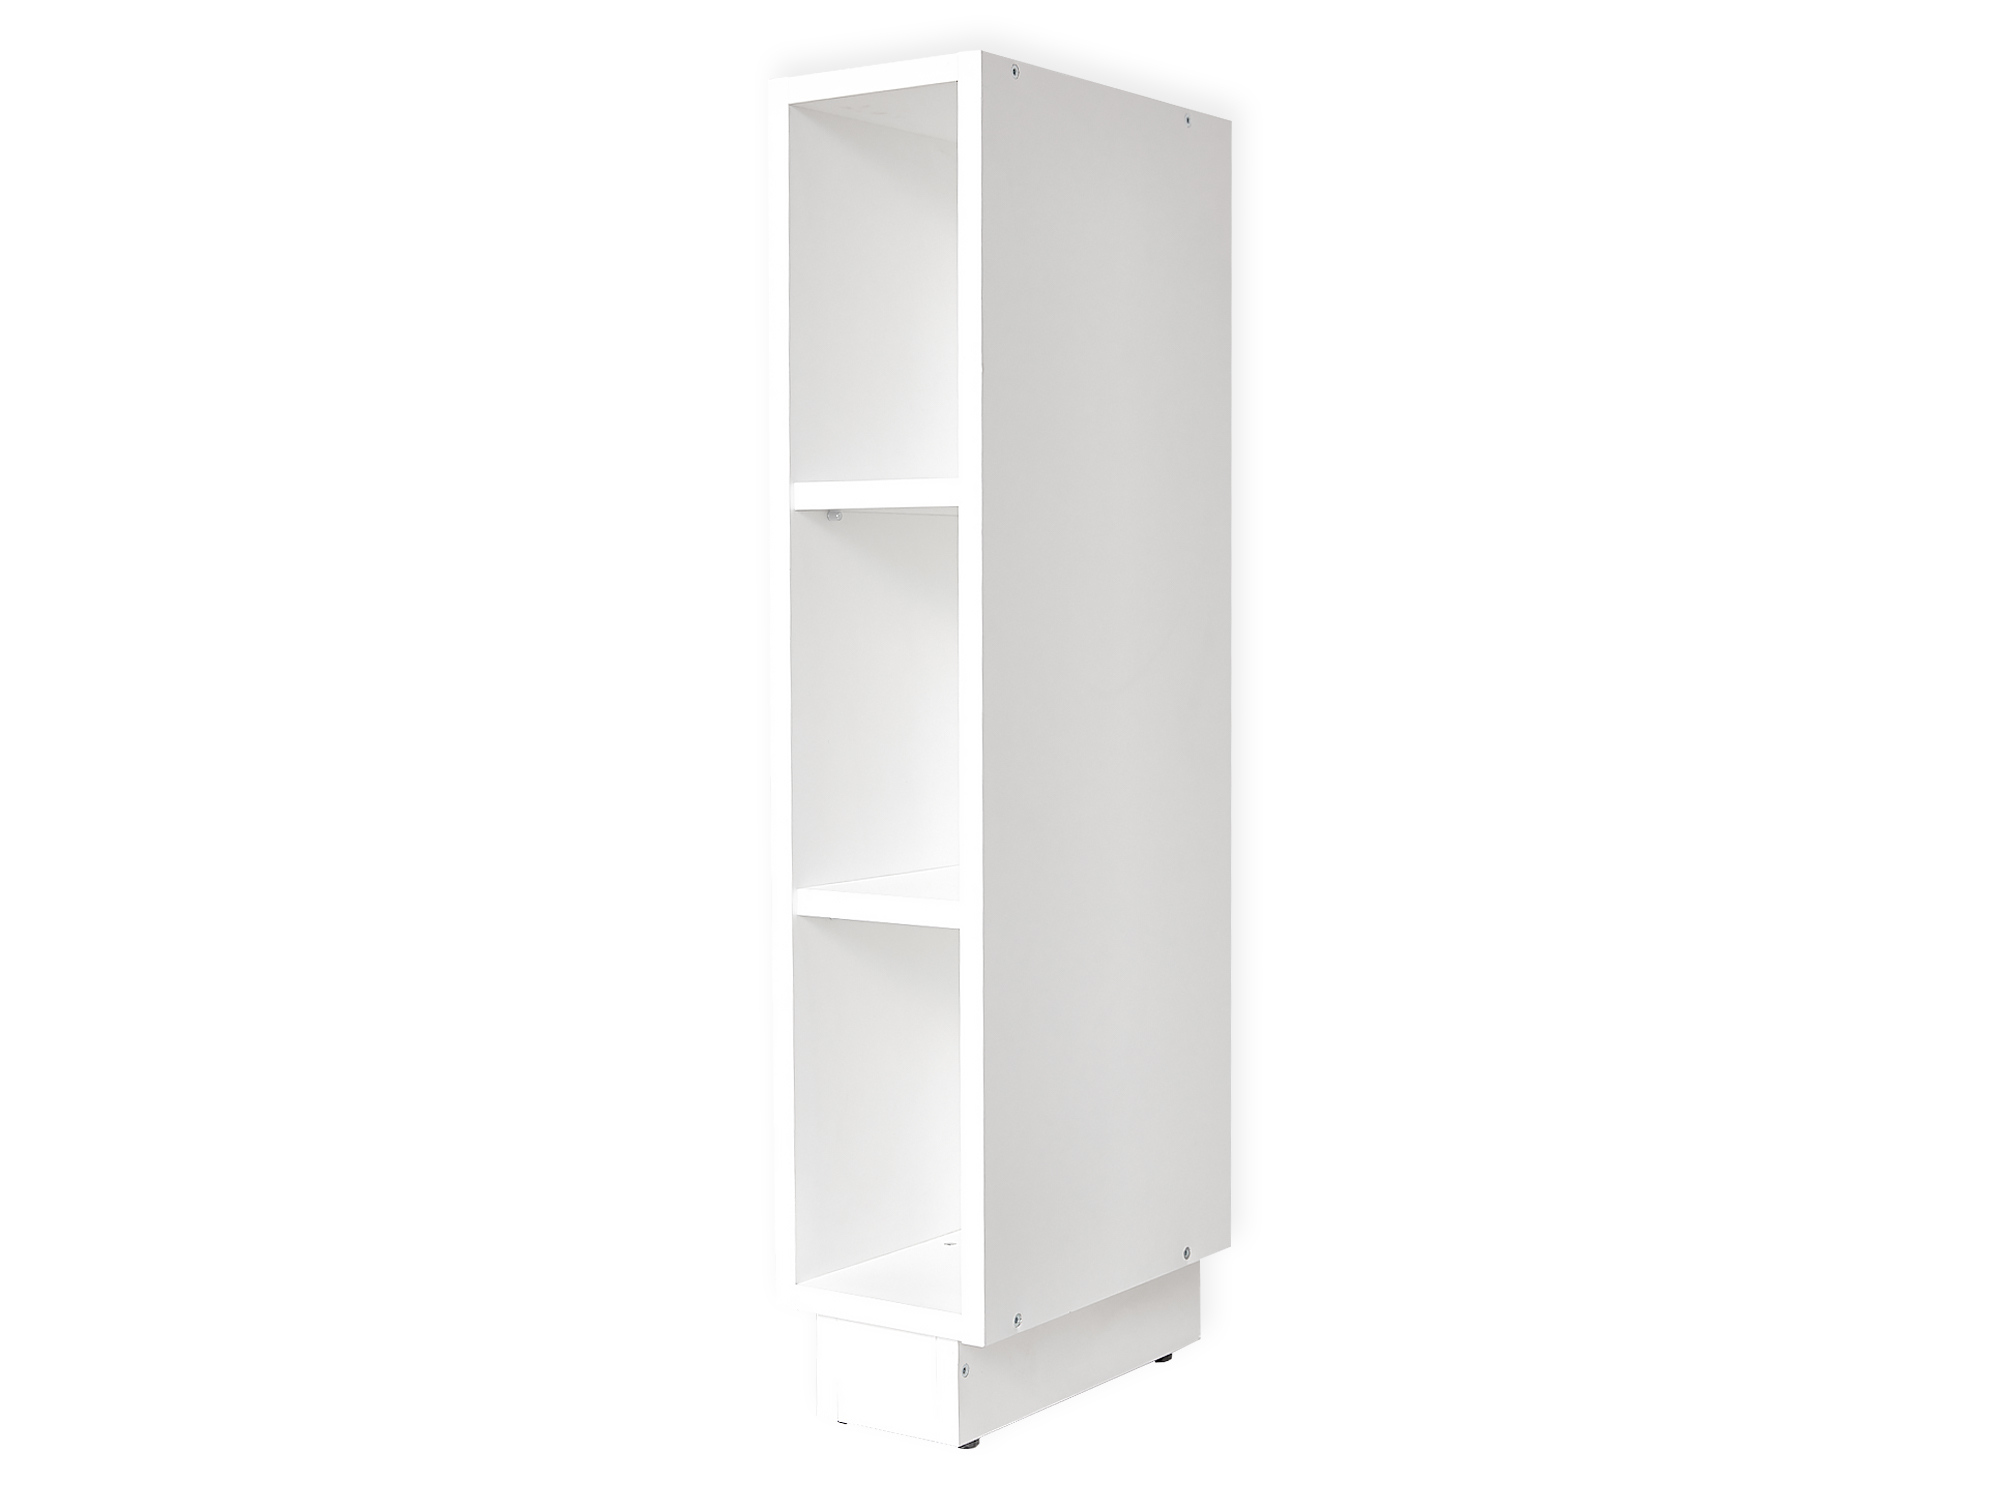 Ikea wickelkommode hemnes wickelauflage for Mueble hemnes ikea